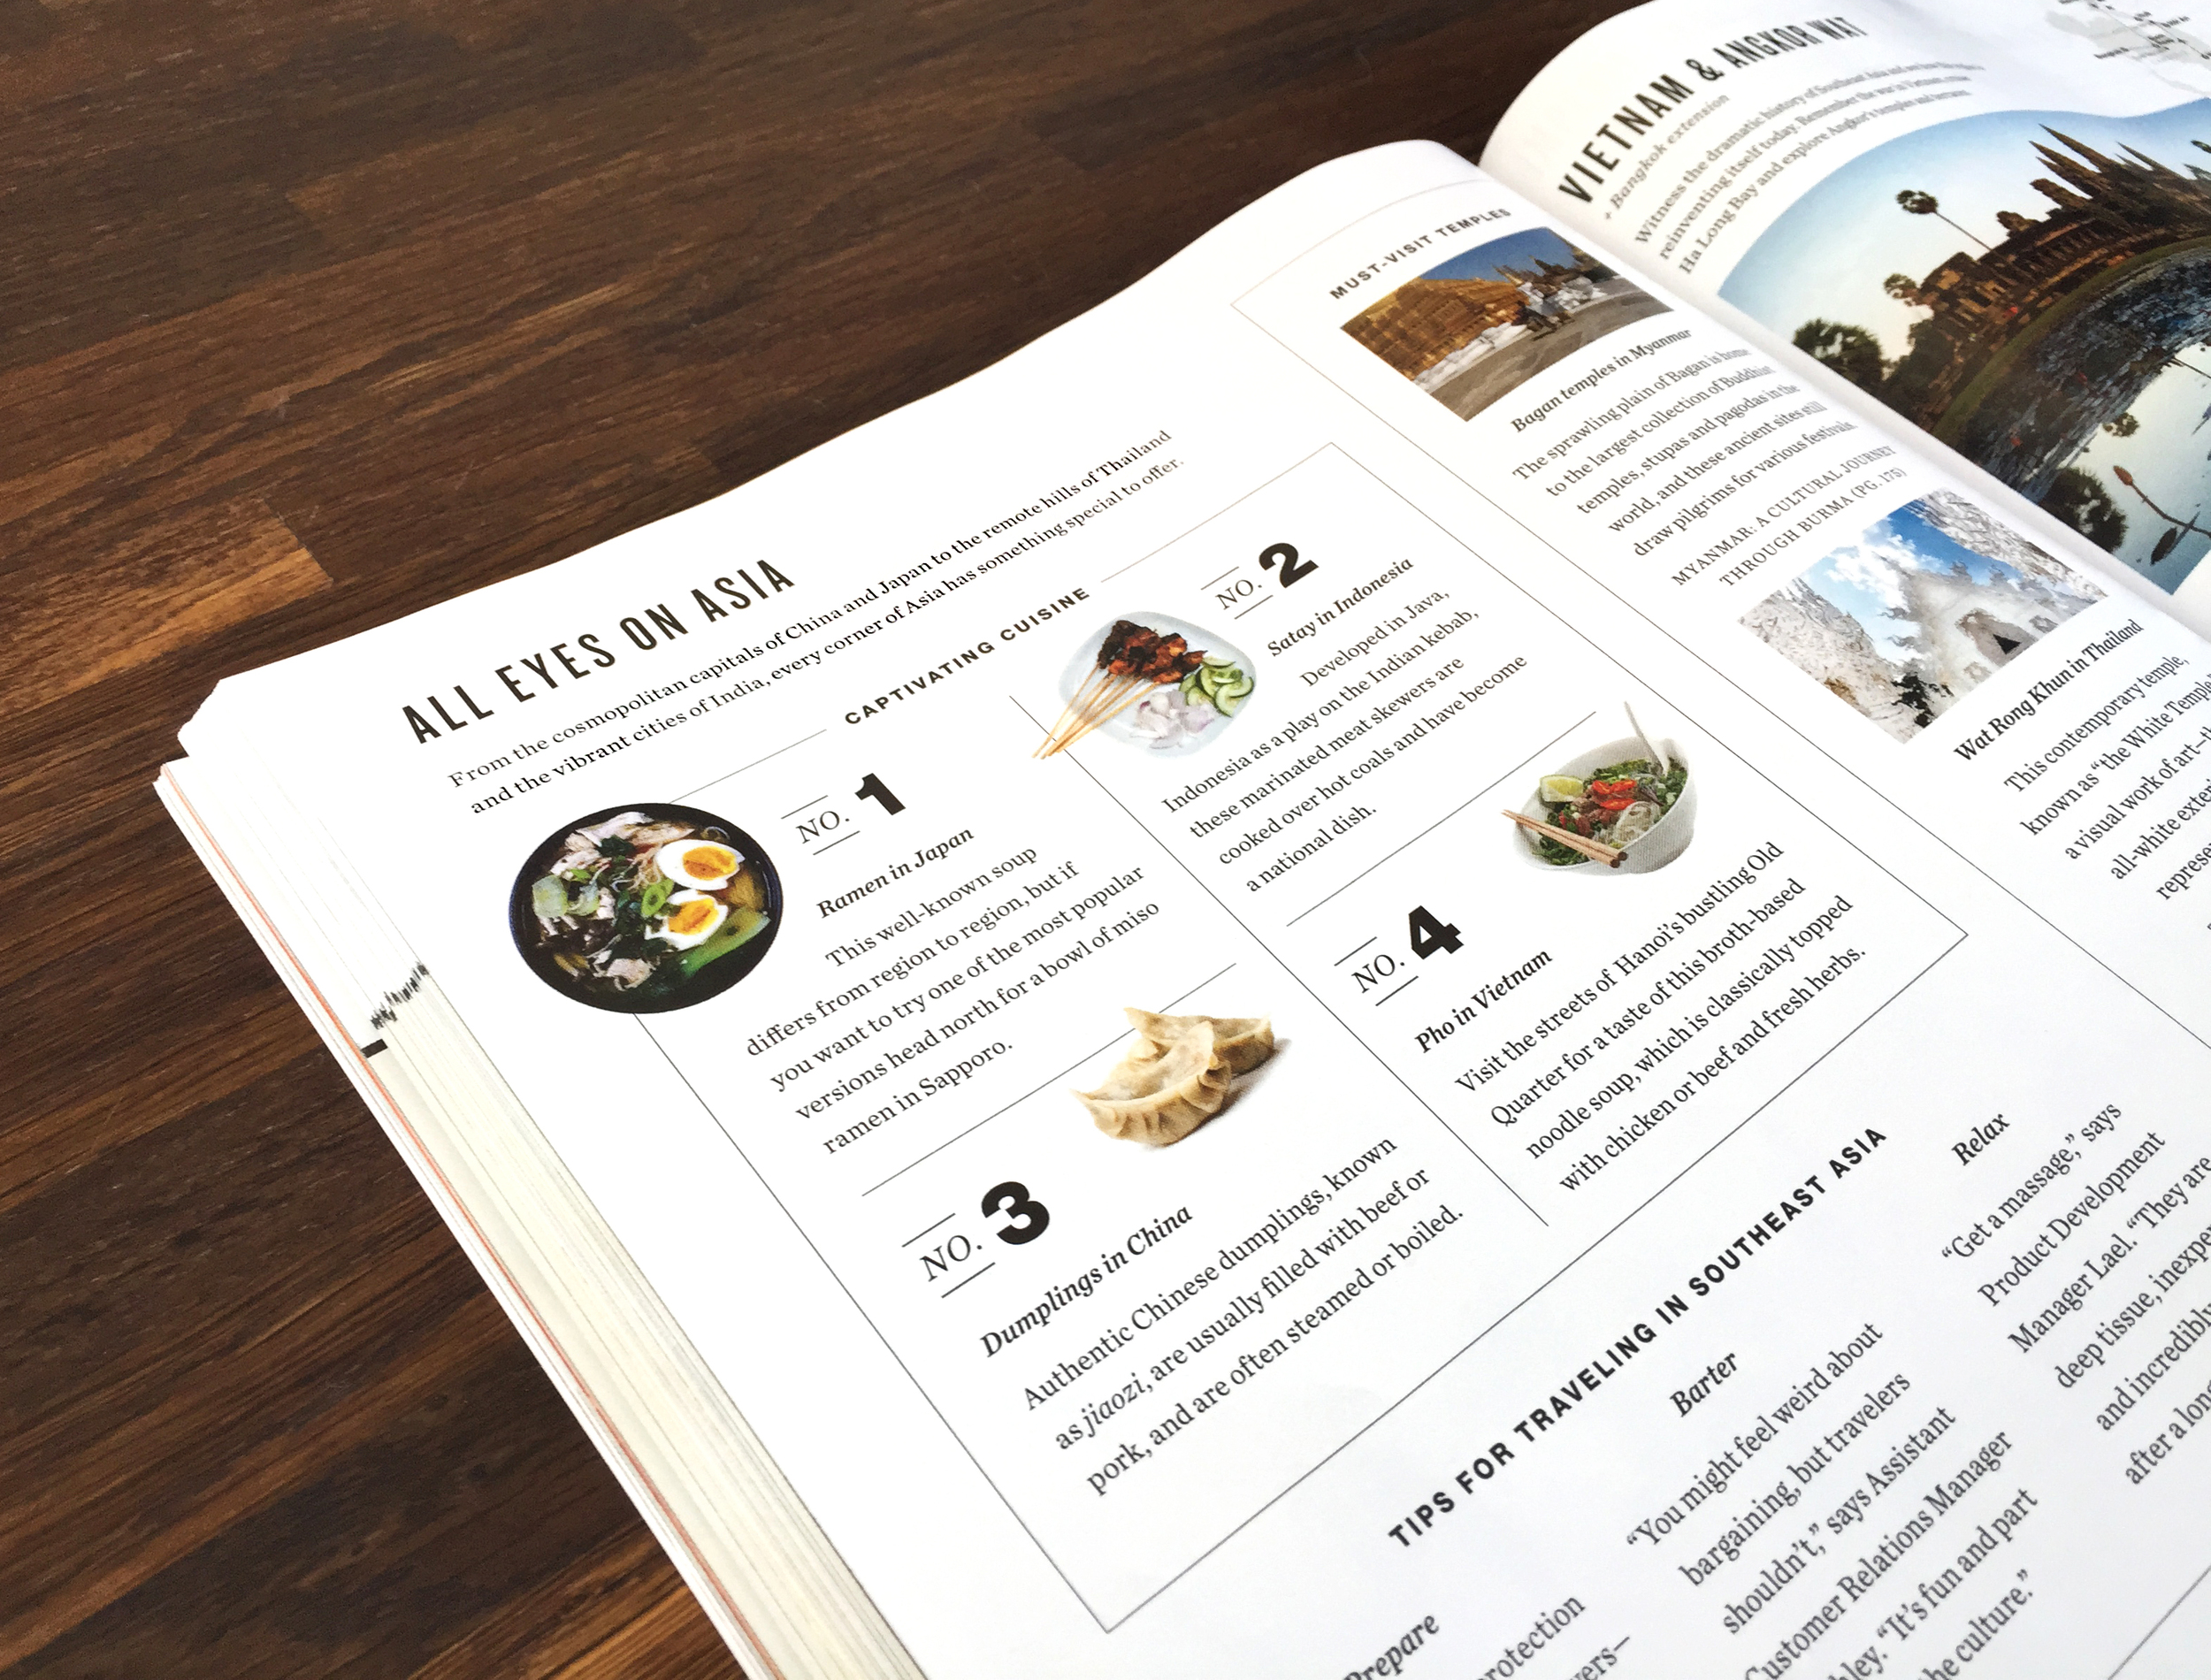 Editorial spreads for each region filled with staff travel tips, traveler content, and fun facts. Our customers can access additional information pertaining to each country on the  blog .